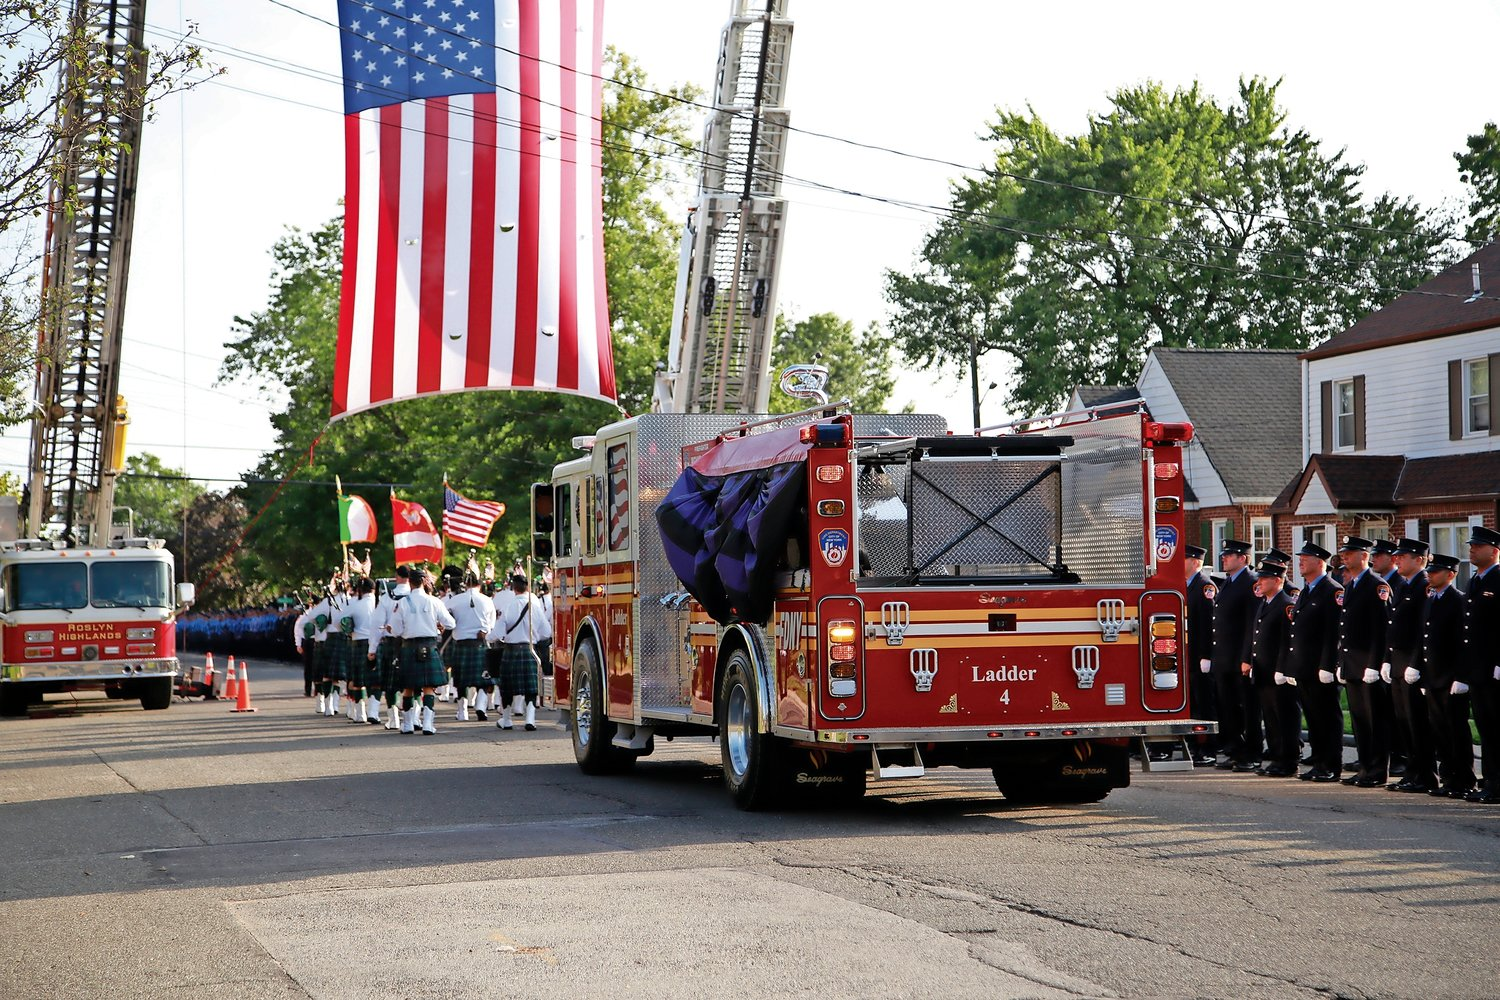 Fire trucks drove down Schrer Boulevard in a processional after the ceremony.